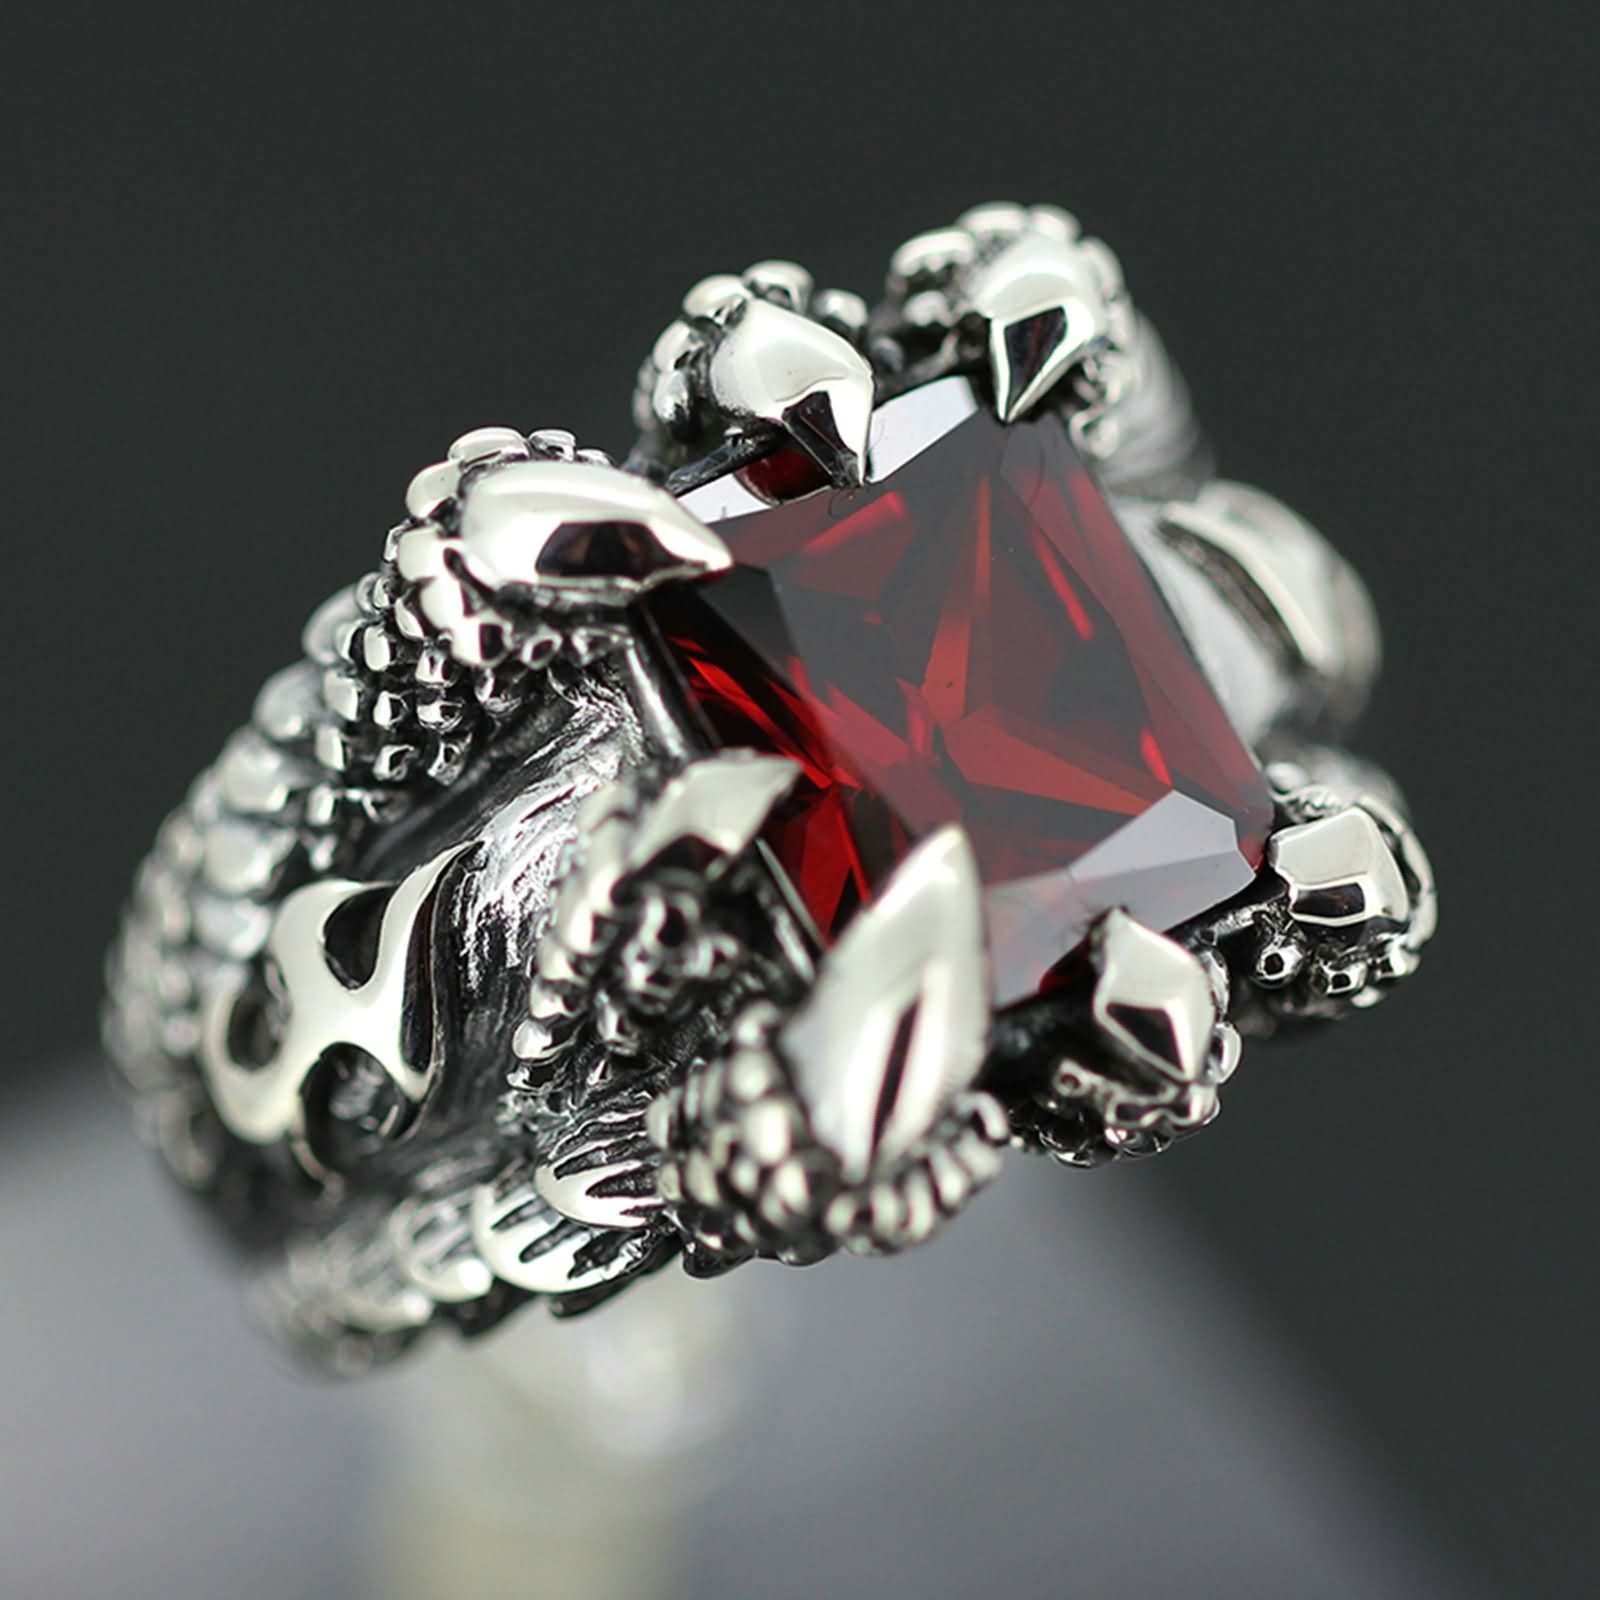 Bishilin Rings for Men Silver Plated Paw with Rectangle Red Gem Partner Rings Silver Size 10 by Bishilin (Image #1)